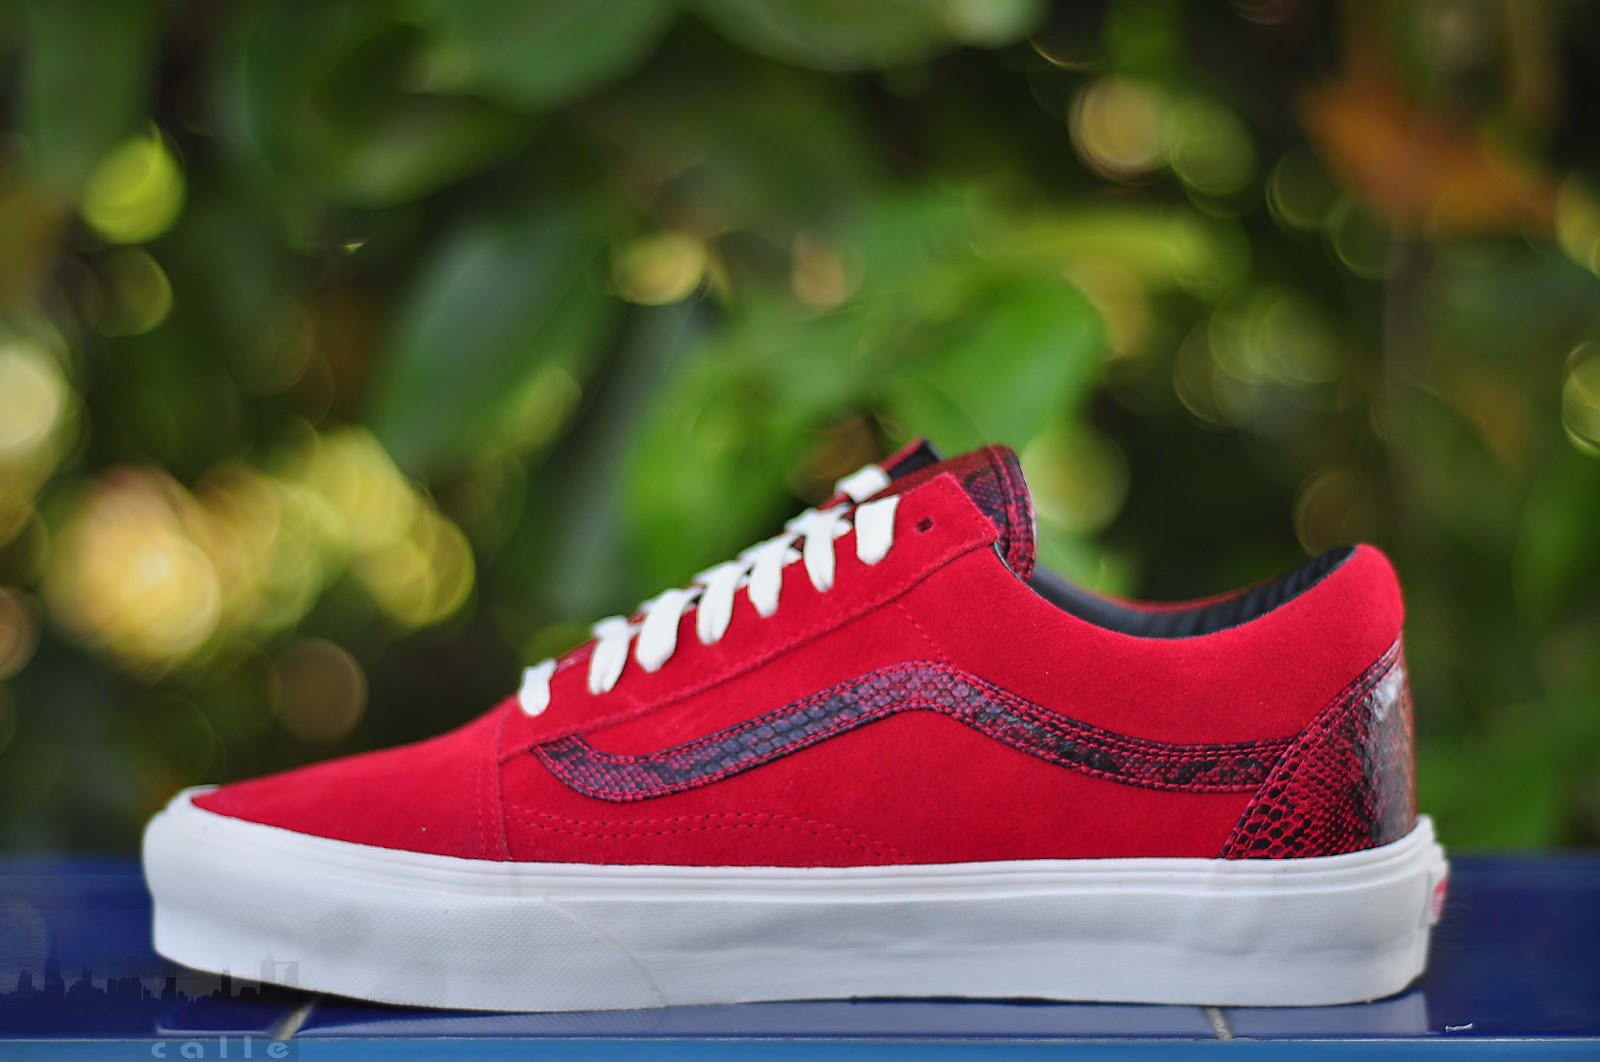 85d8e0457f VANS OLDSKOOL YEAR OF THE SNAKE (FORMULA 1 RED)   SIZES  8-11   PRICE  3498    FREE SHIPPING NATIONWIDE